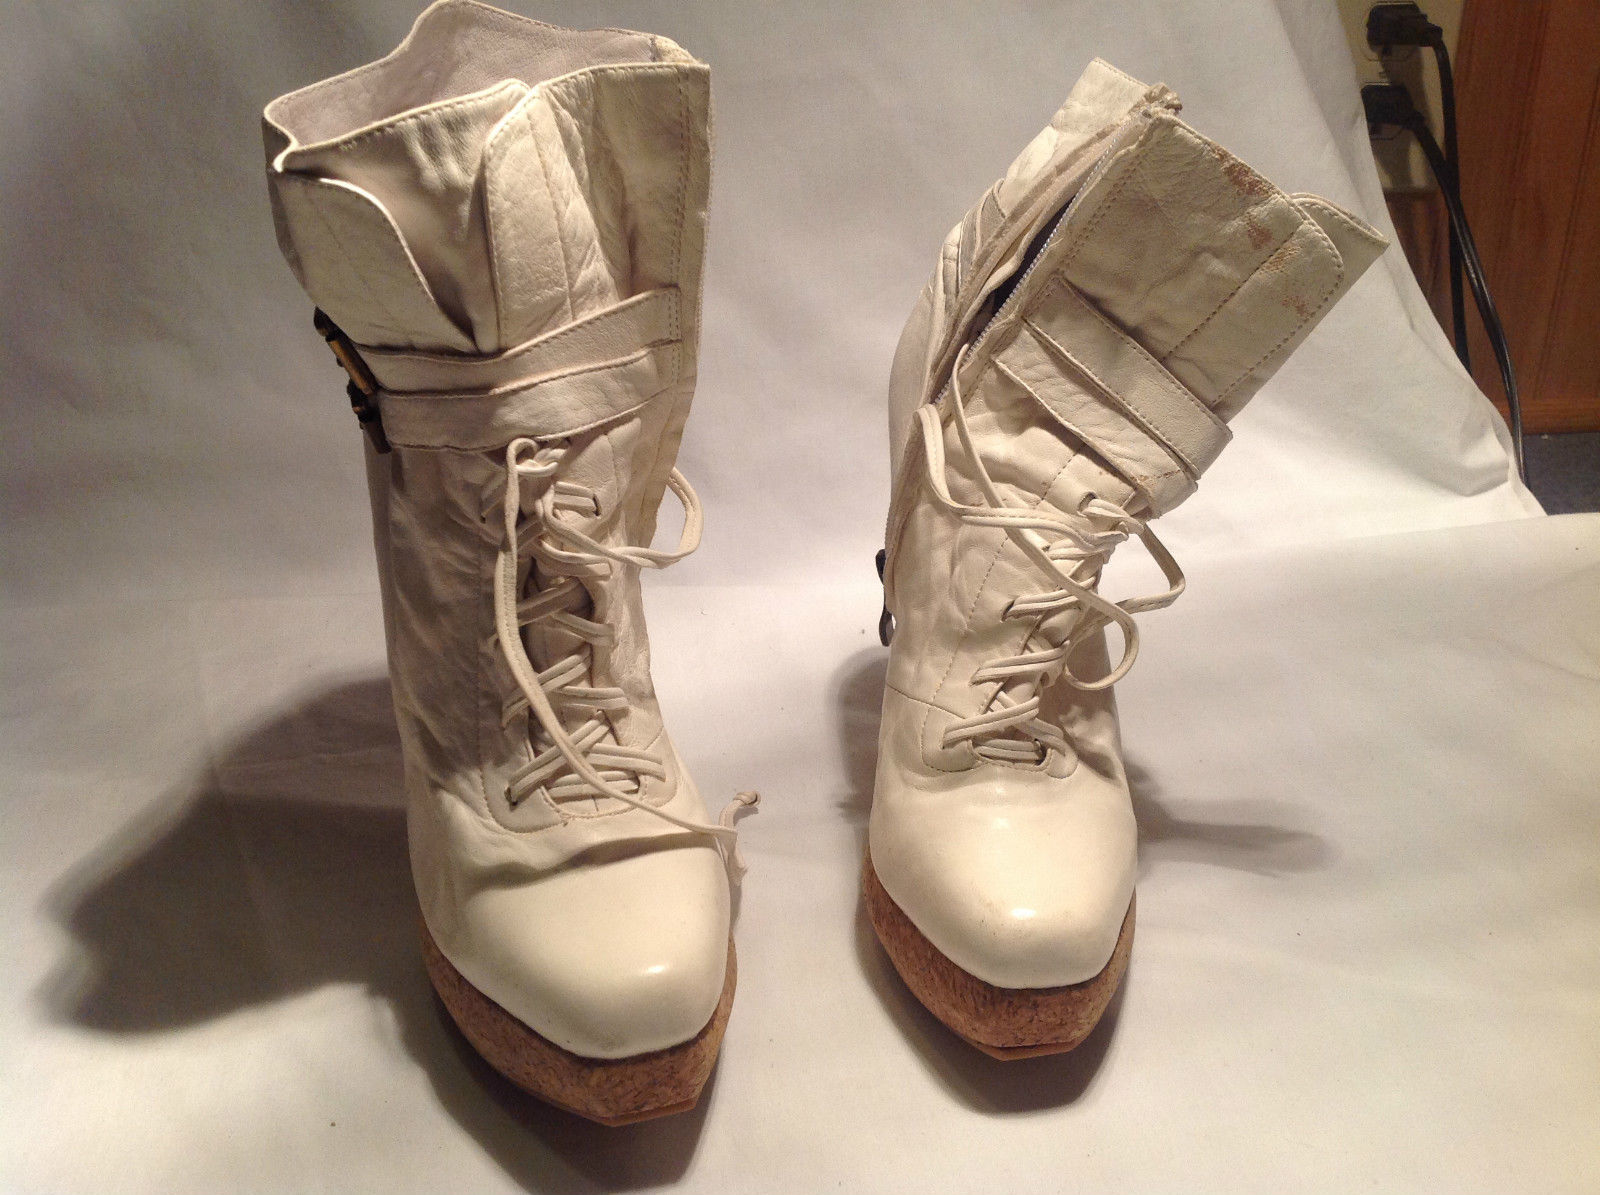 White Tan Plomo High Heel Boots No Given Size Rubber Sole Measurements Below